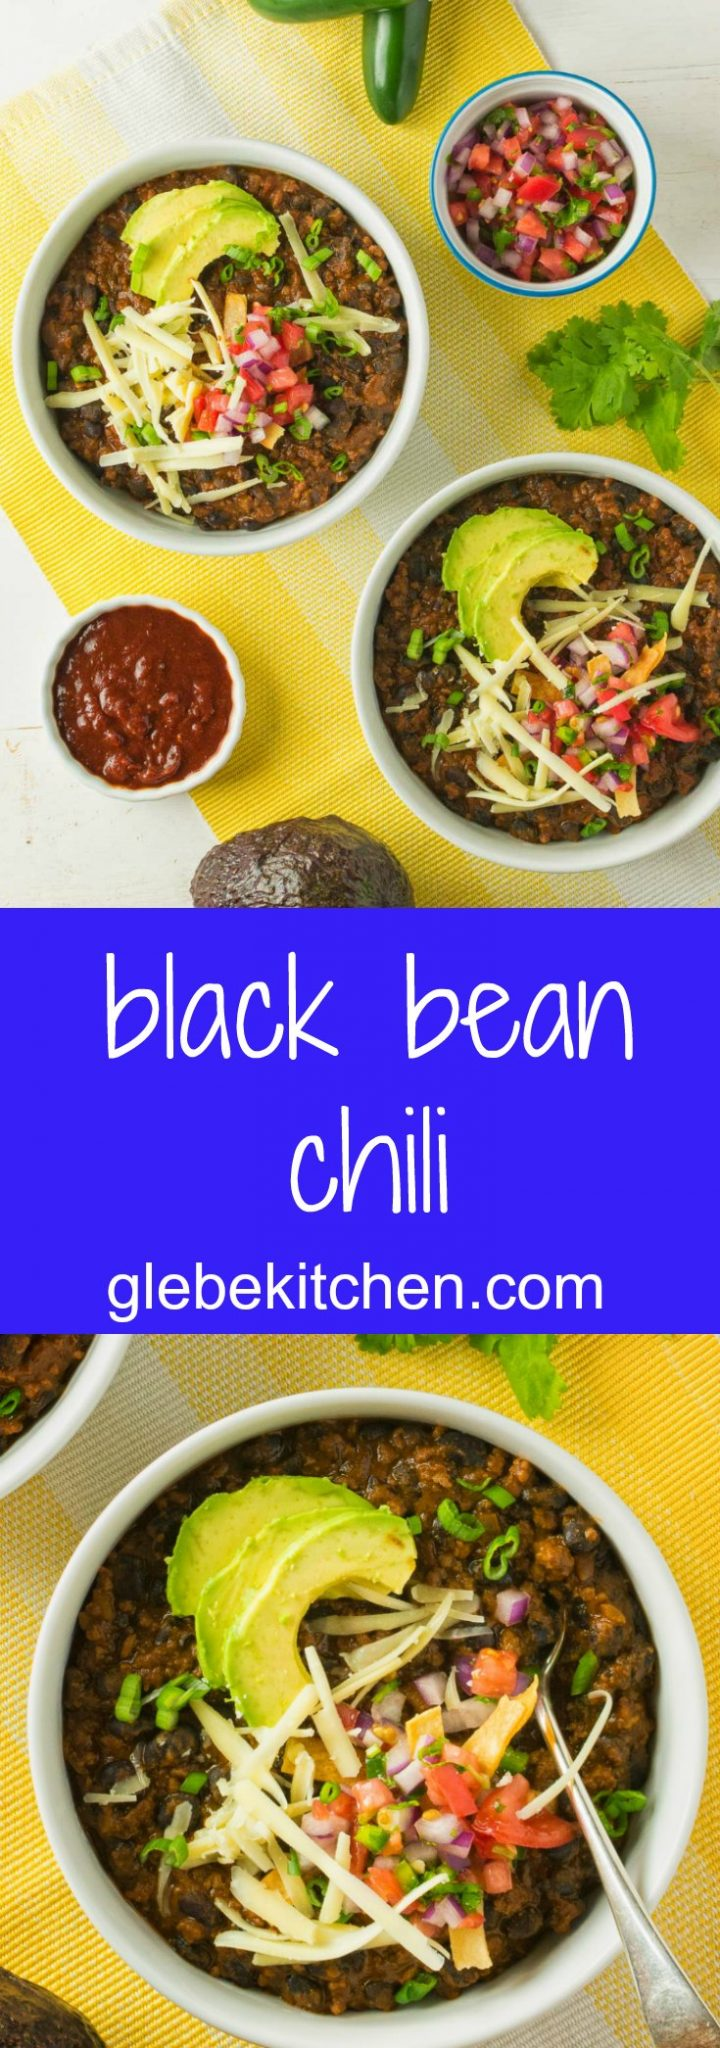 Pork, beef, new mexican red chili powder and fire roasted tomatoes all star in this black bean chili. This chili is for lovers of big flavours!